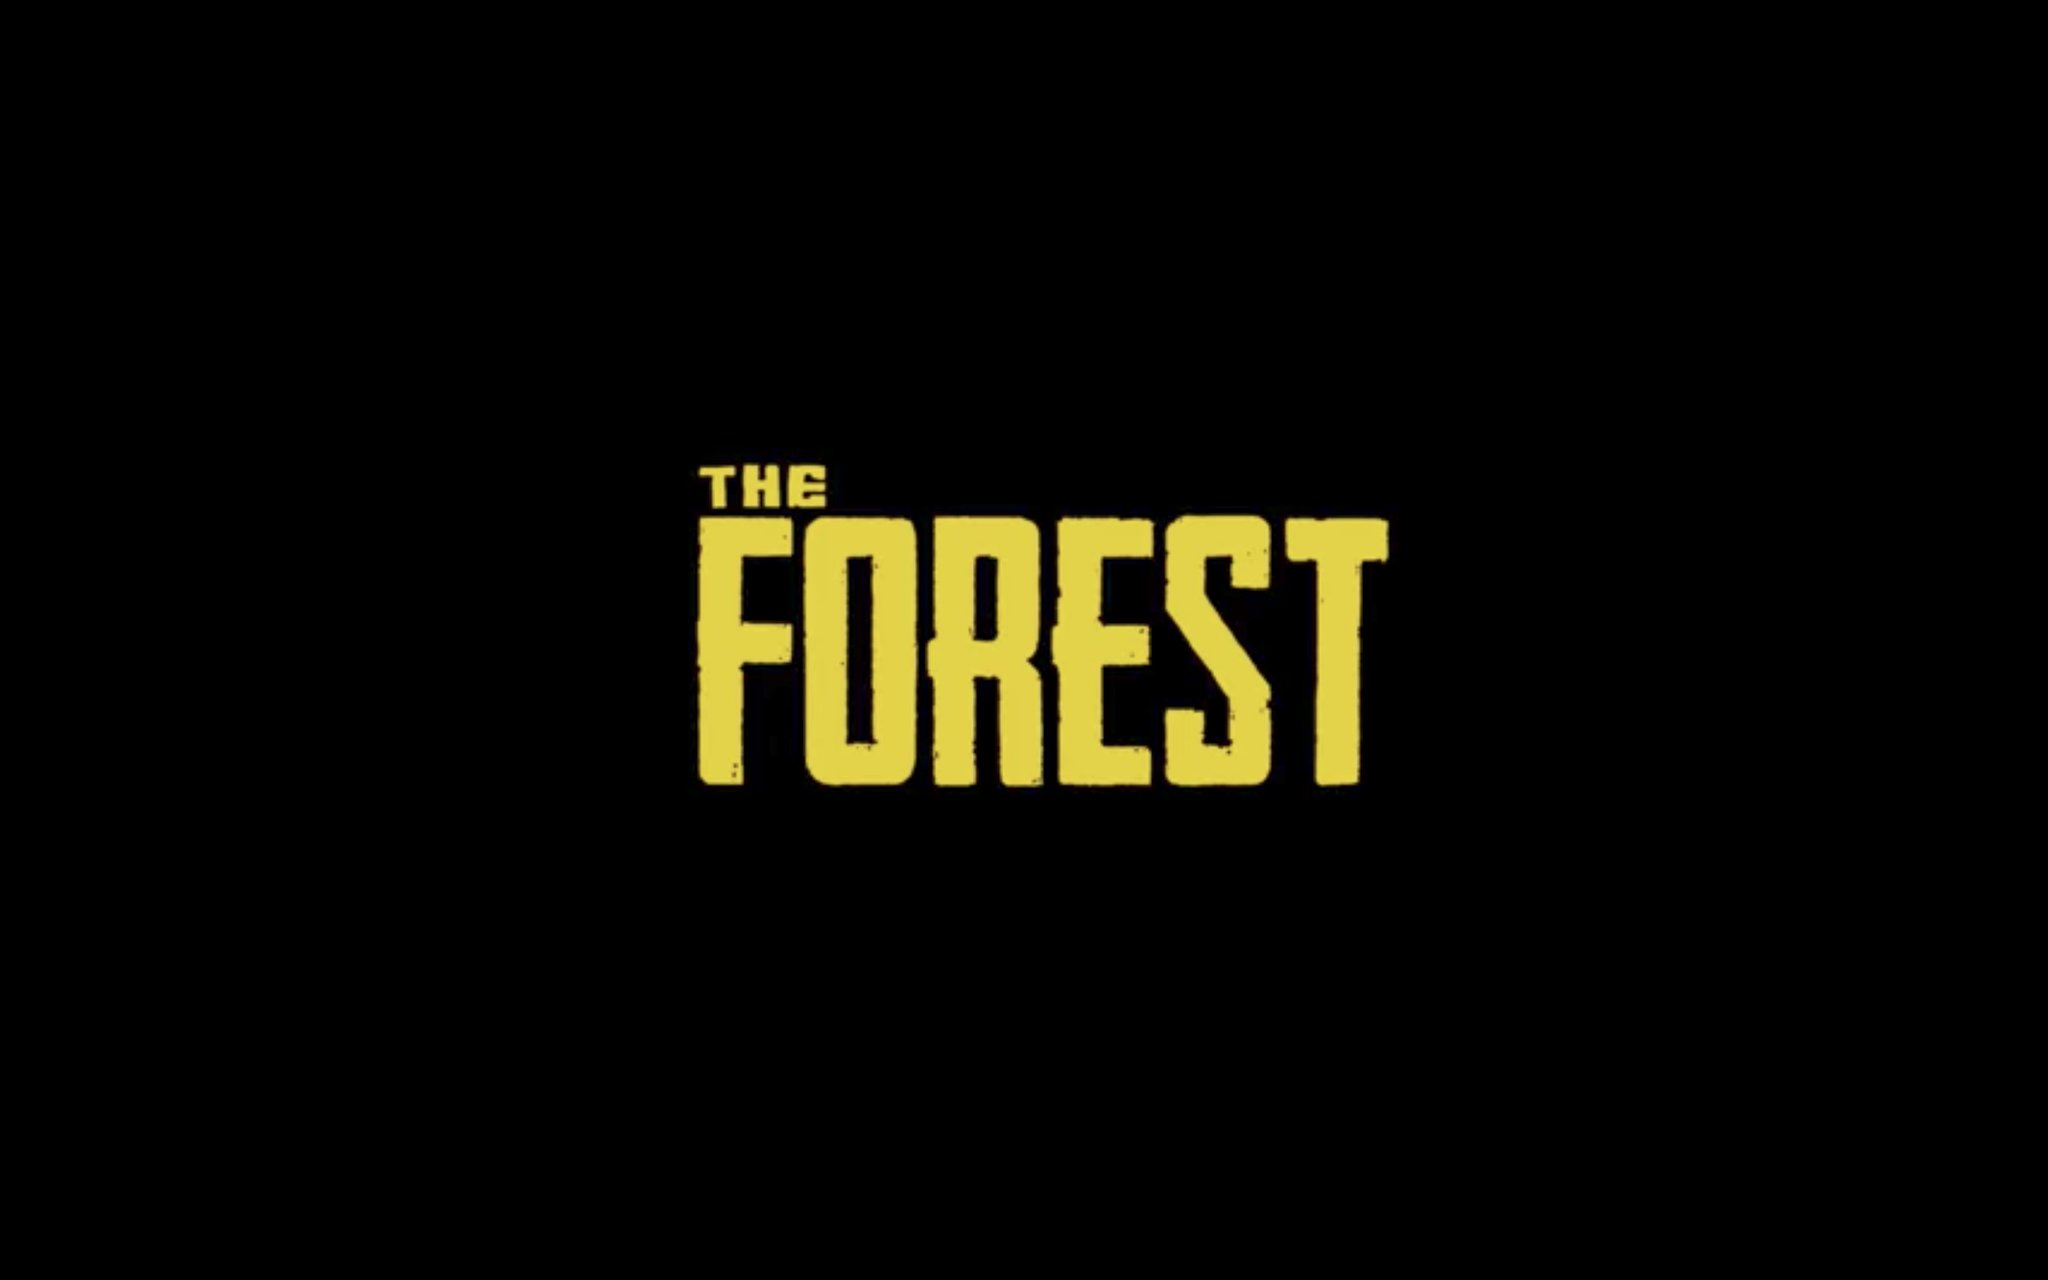 Survival won't be easy in the brutal open-world of The Forest, coming to PS4 in 2018. https://t.co/ULkbXAU1tv https://t.co/BQUftLOASm